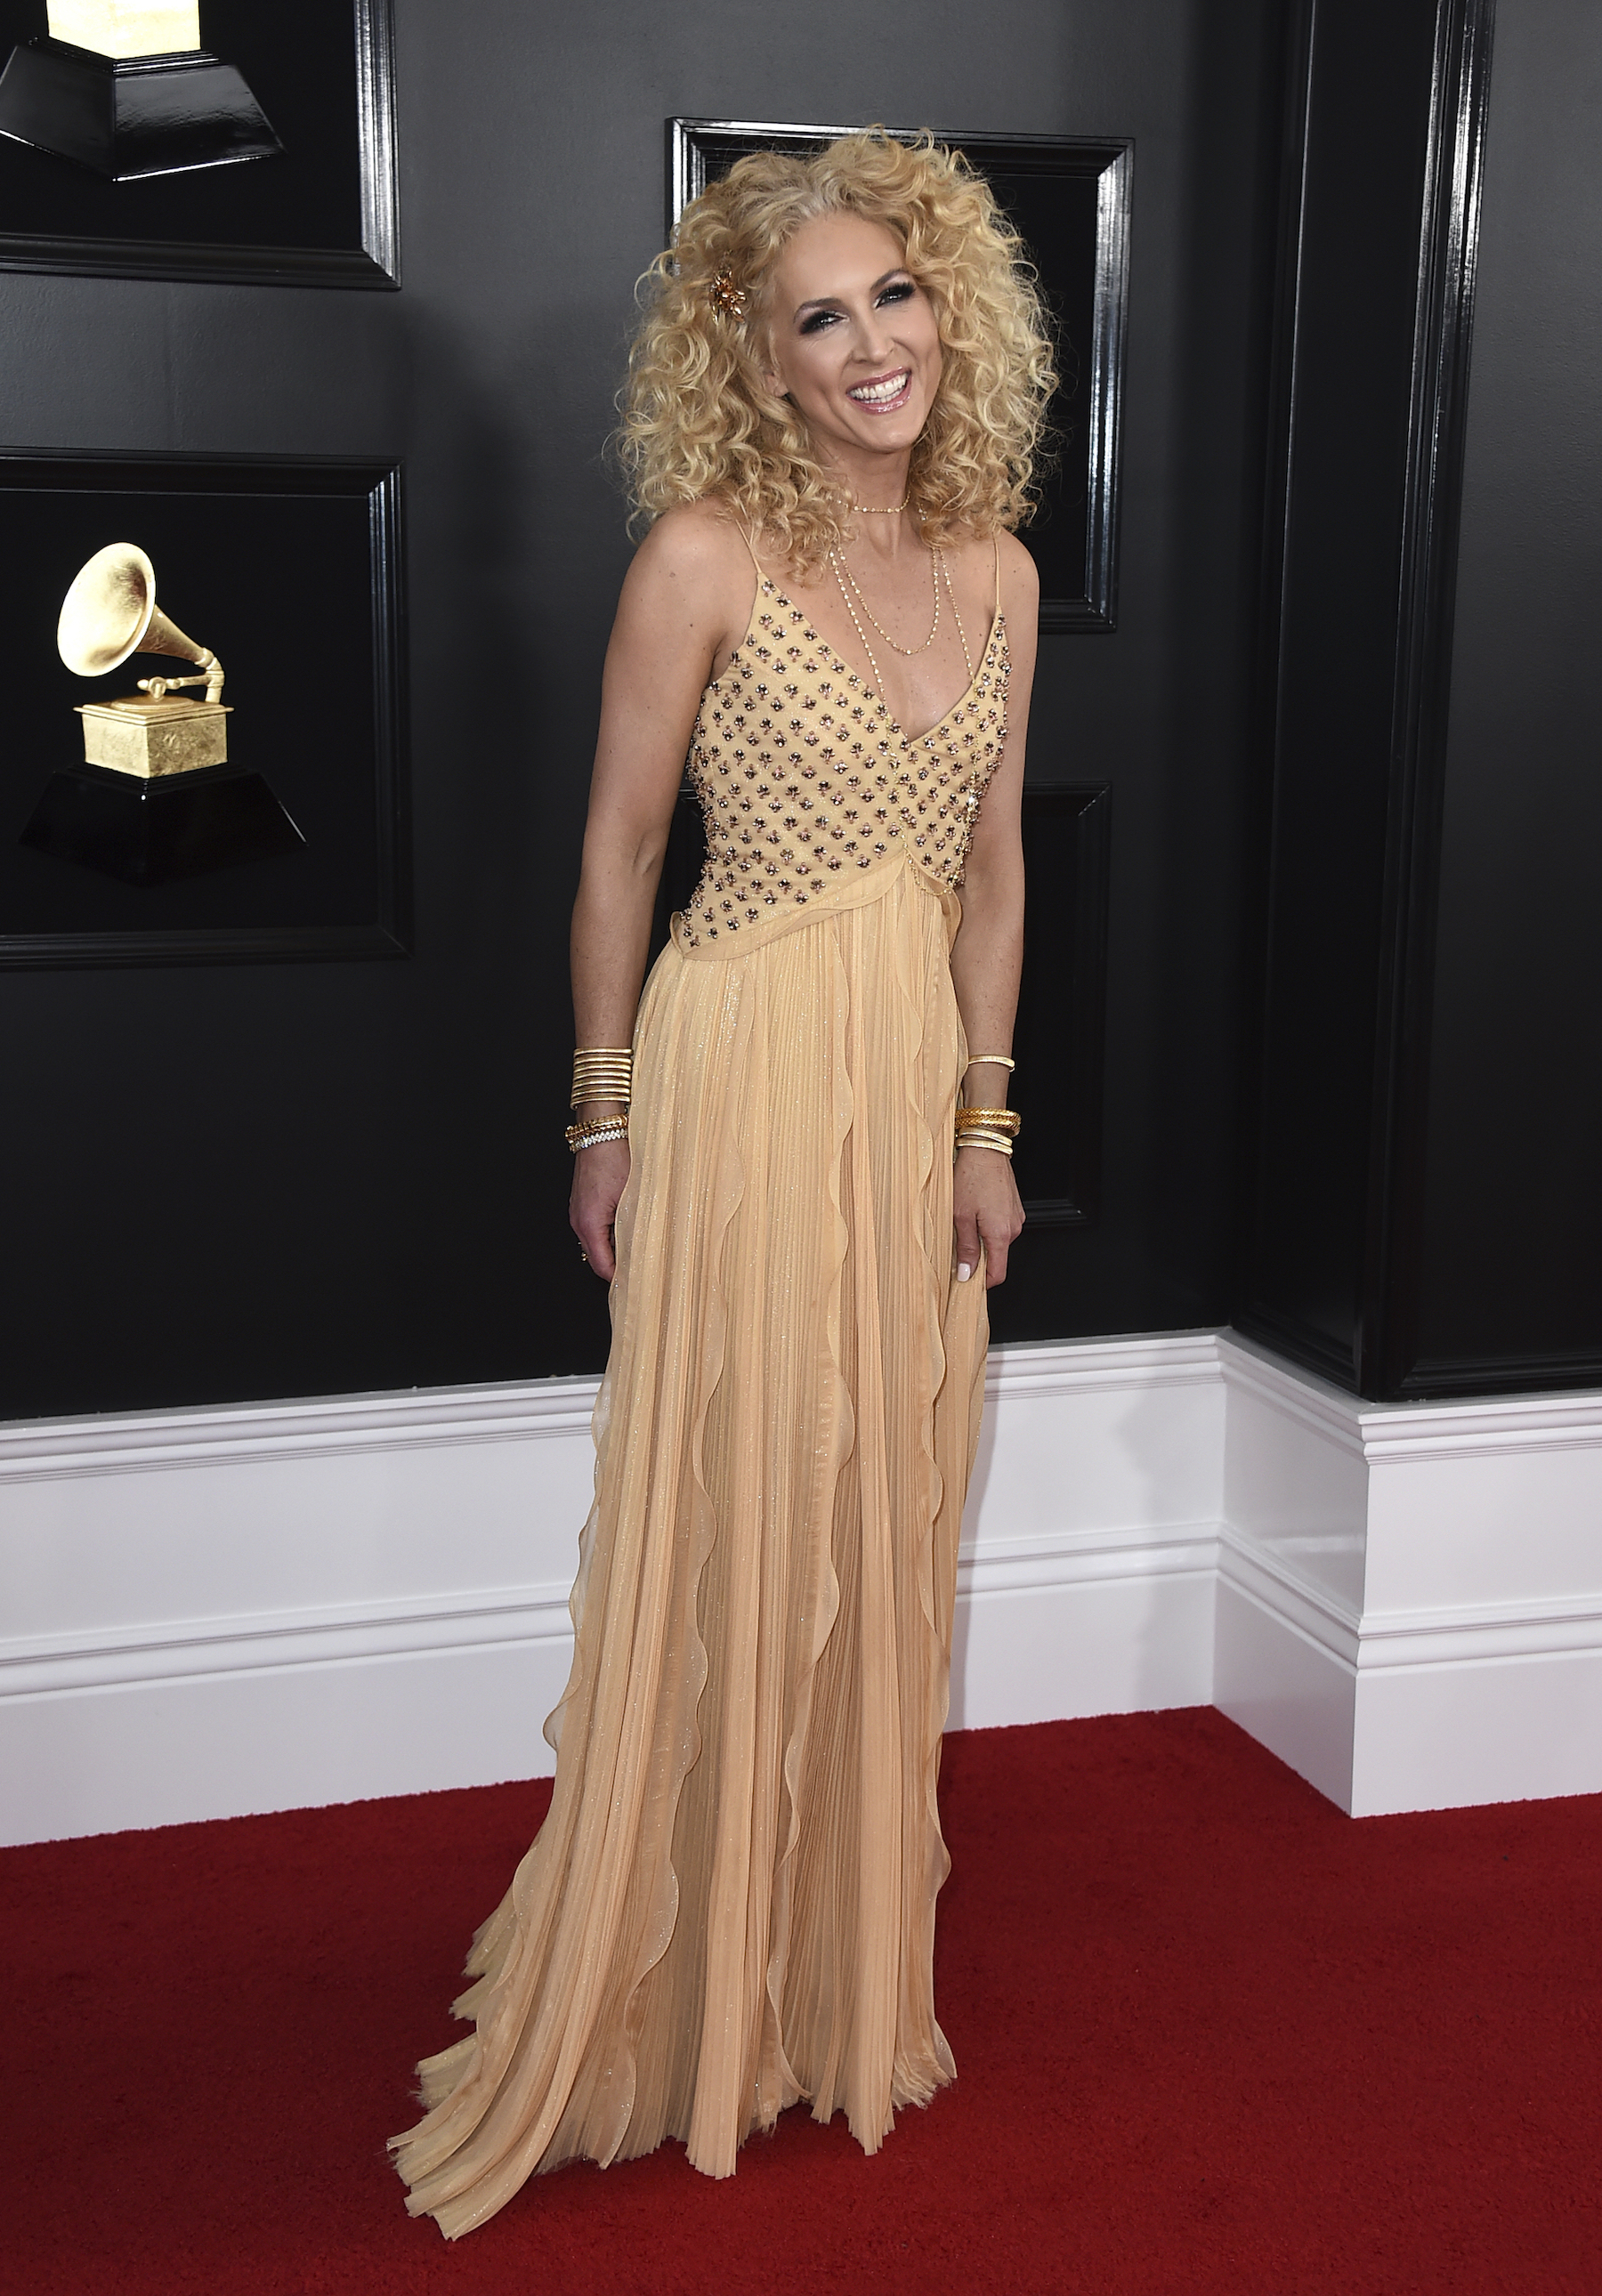 "<div class=""meta image-caption""><div class=""origin-logo origin-image ap""><span>AP</span></div><span class=""caption-text"">Kimberly Schlapman of Little Big Town arrives at the 61st annual Grammy Awards at the Staples Center on Sunday, Feb. 10, 2019, in Los Angeles. (Jordan Strauss/Invision/AP)</span></div>"